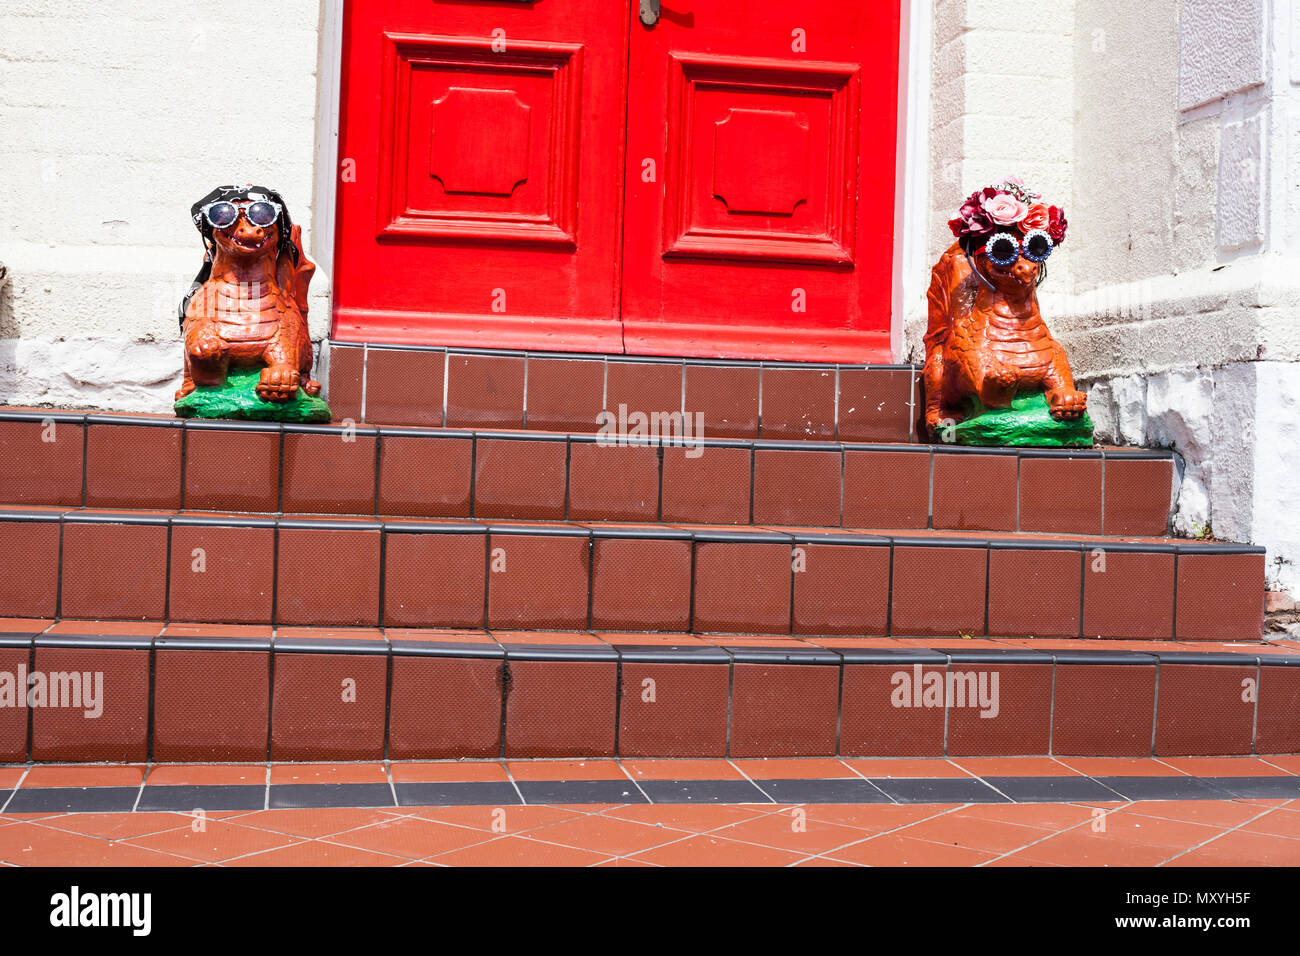 House Entrance With Red Door And Two Dragon Statues On The Floor